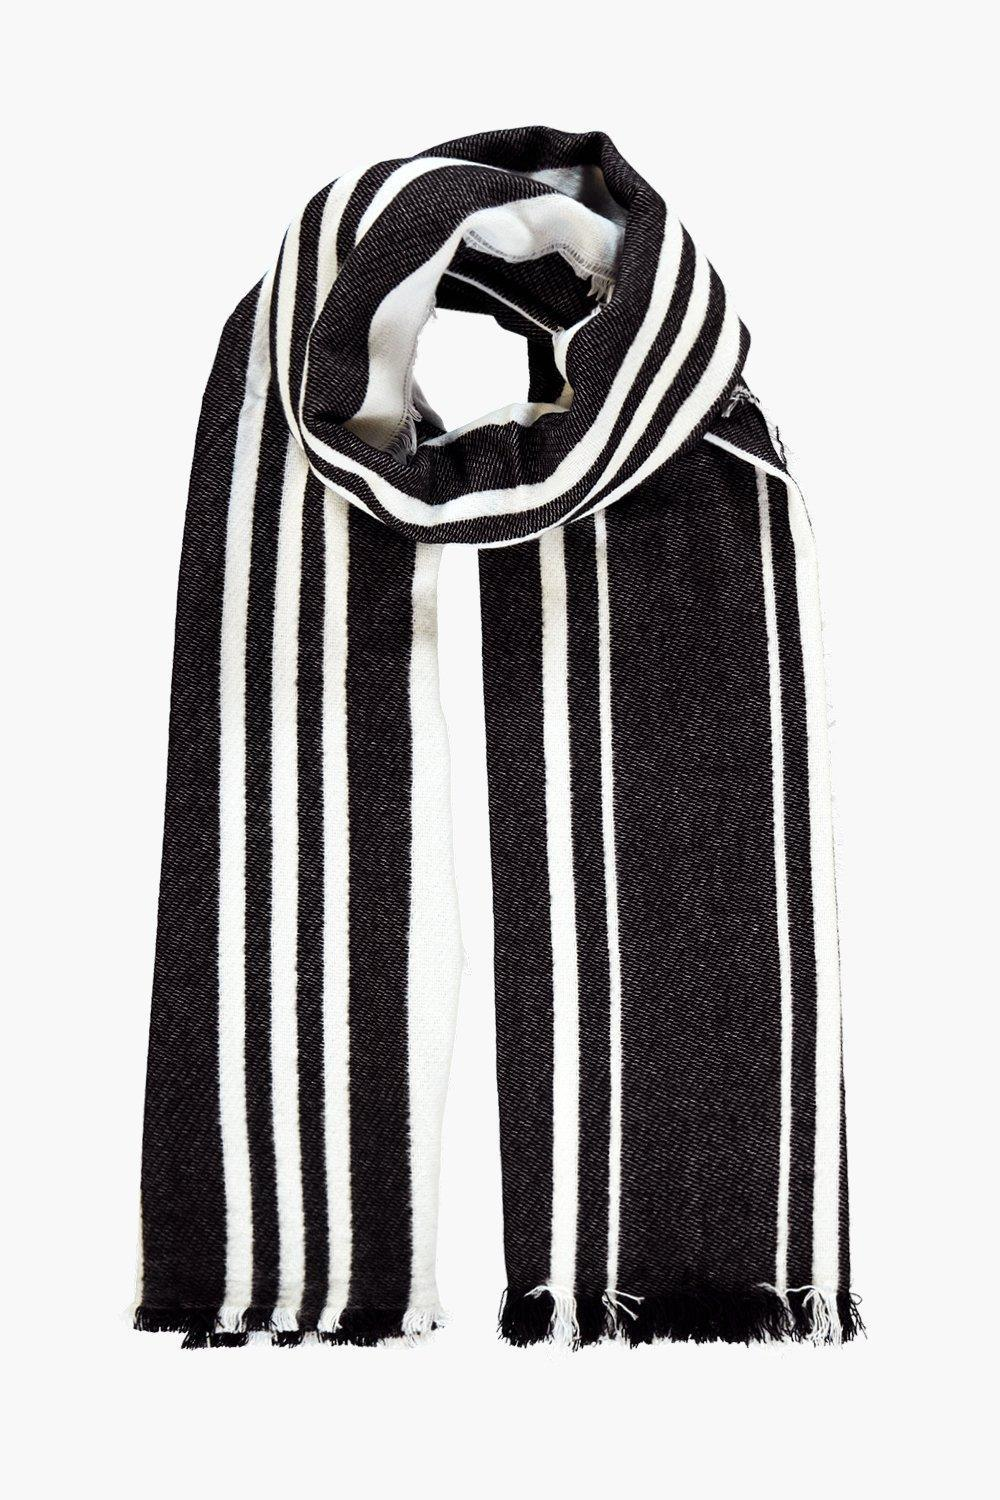 Varied Stripe Wool Oversize Scarf Black - secondary colour: white; predominant colour: black; occasions: casual, creative work; type of pattern: standard; style: regular; size: large; material: knits; pattern: vertical stripes; season: a/w 2016; wardrobe: highlight